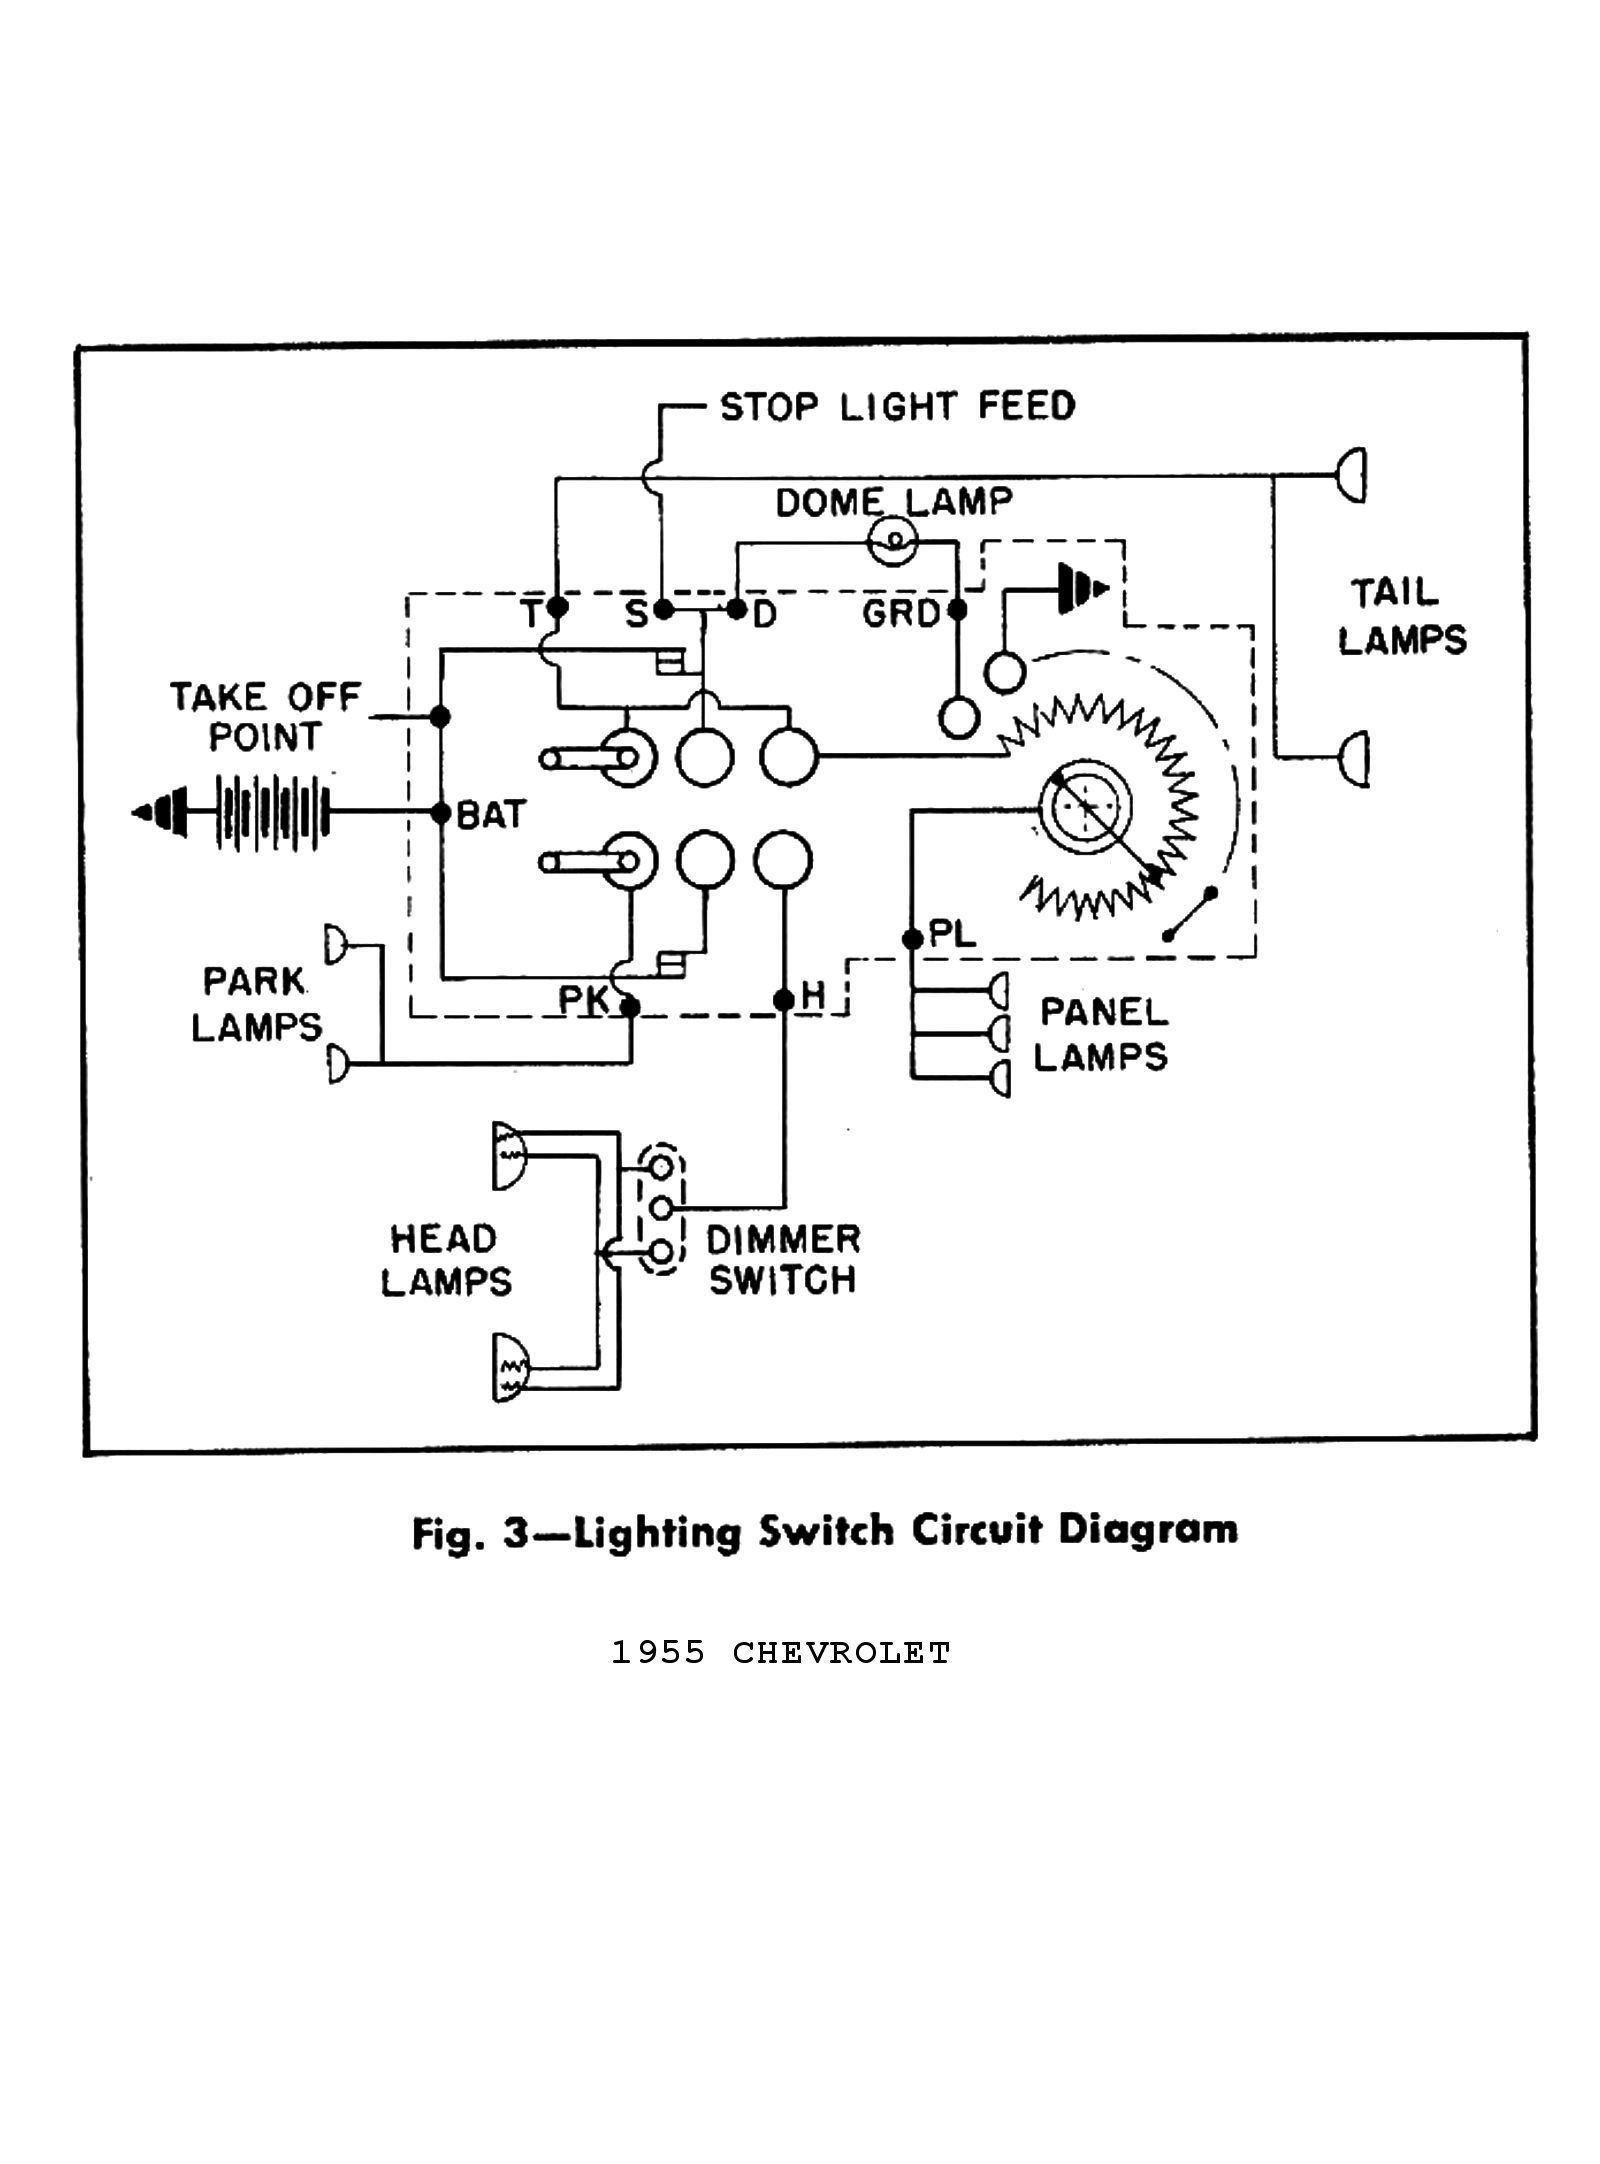 Dome Light Wiring Diagram 1955 Chevy Bel Air - Epu8t.chrisfarmer.uk on chevy light switch wiring, chevy window switch wiring, chevy fuel pump relay wiring, chevy speaker wiring, chevy ignition coil wiring, chevy horn relay wiring, chevy steering column wiring, chevy starter wiring, chevy neutral safety switch wiring, chevy voltage regulator wiring, chevy headlight switch wiring, chevy fuel gauge wiring, chevy wiper motor wiring, chevy dome light wiring, chevy engine wiring,